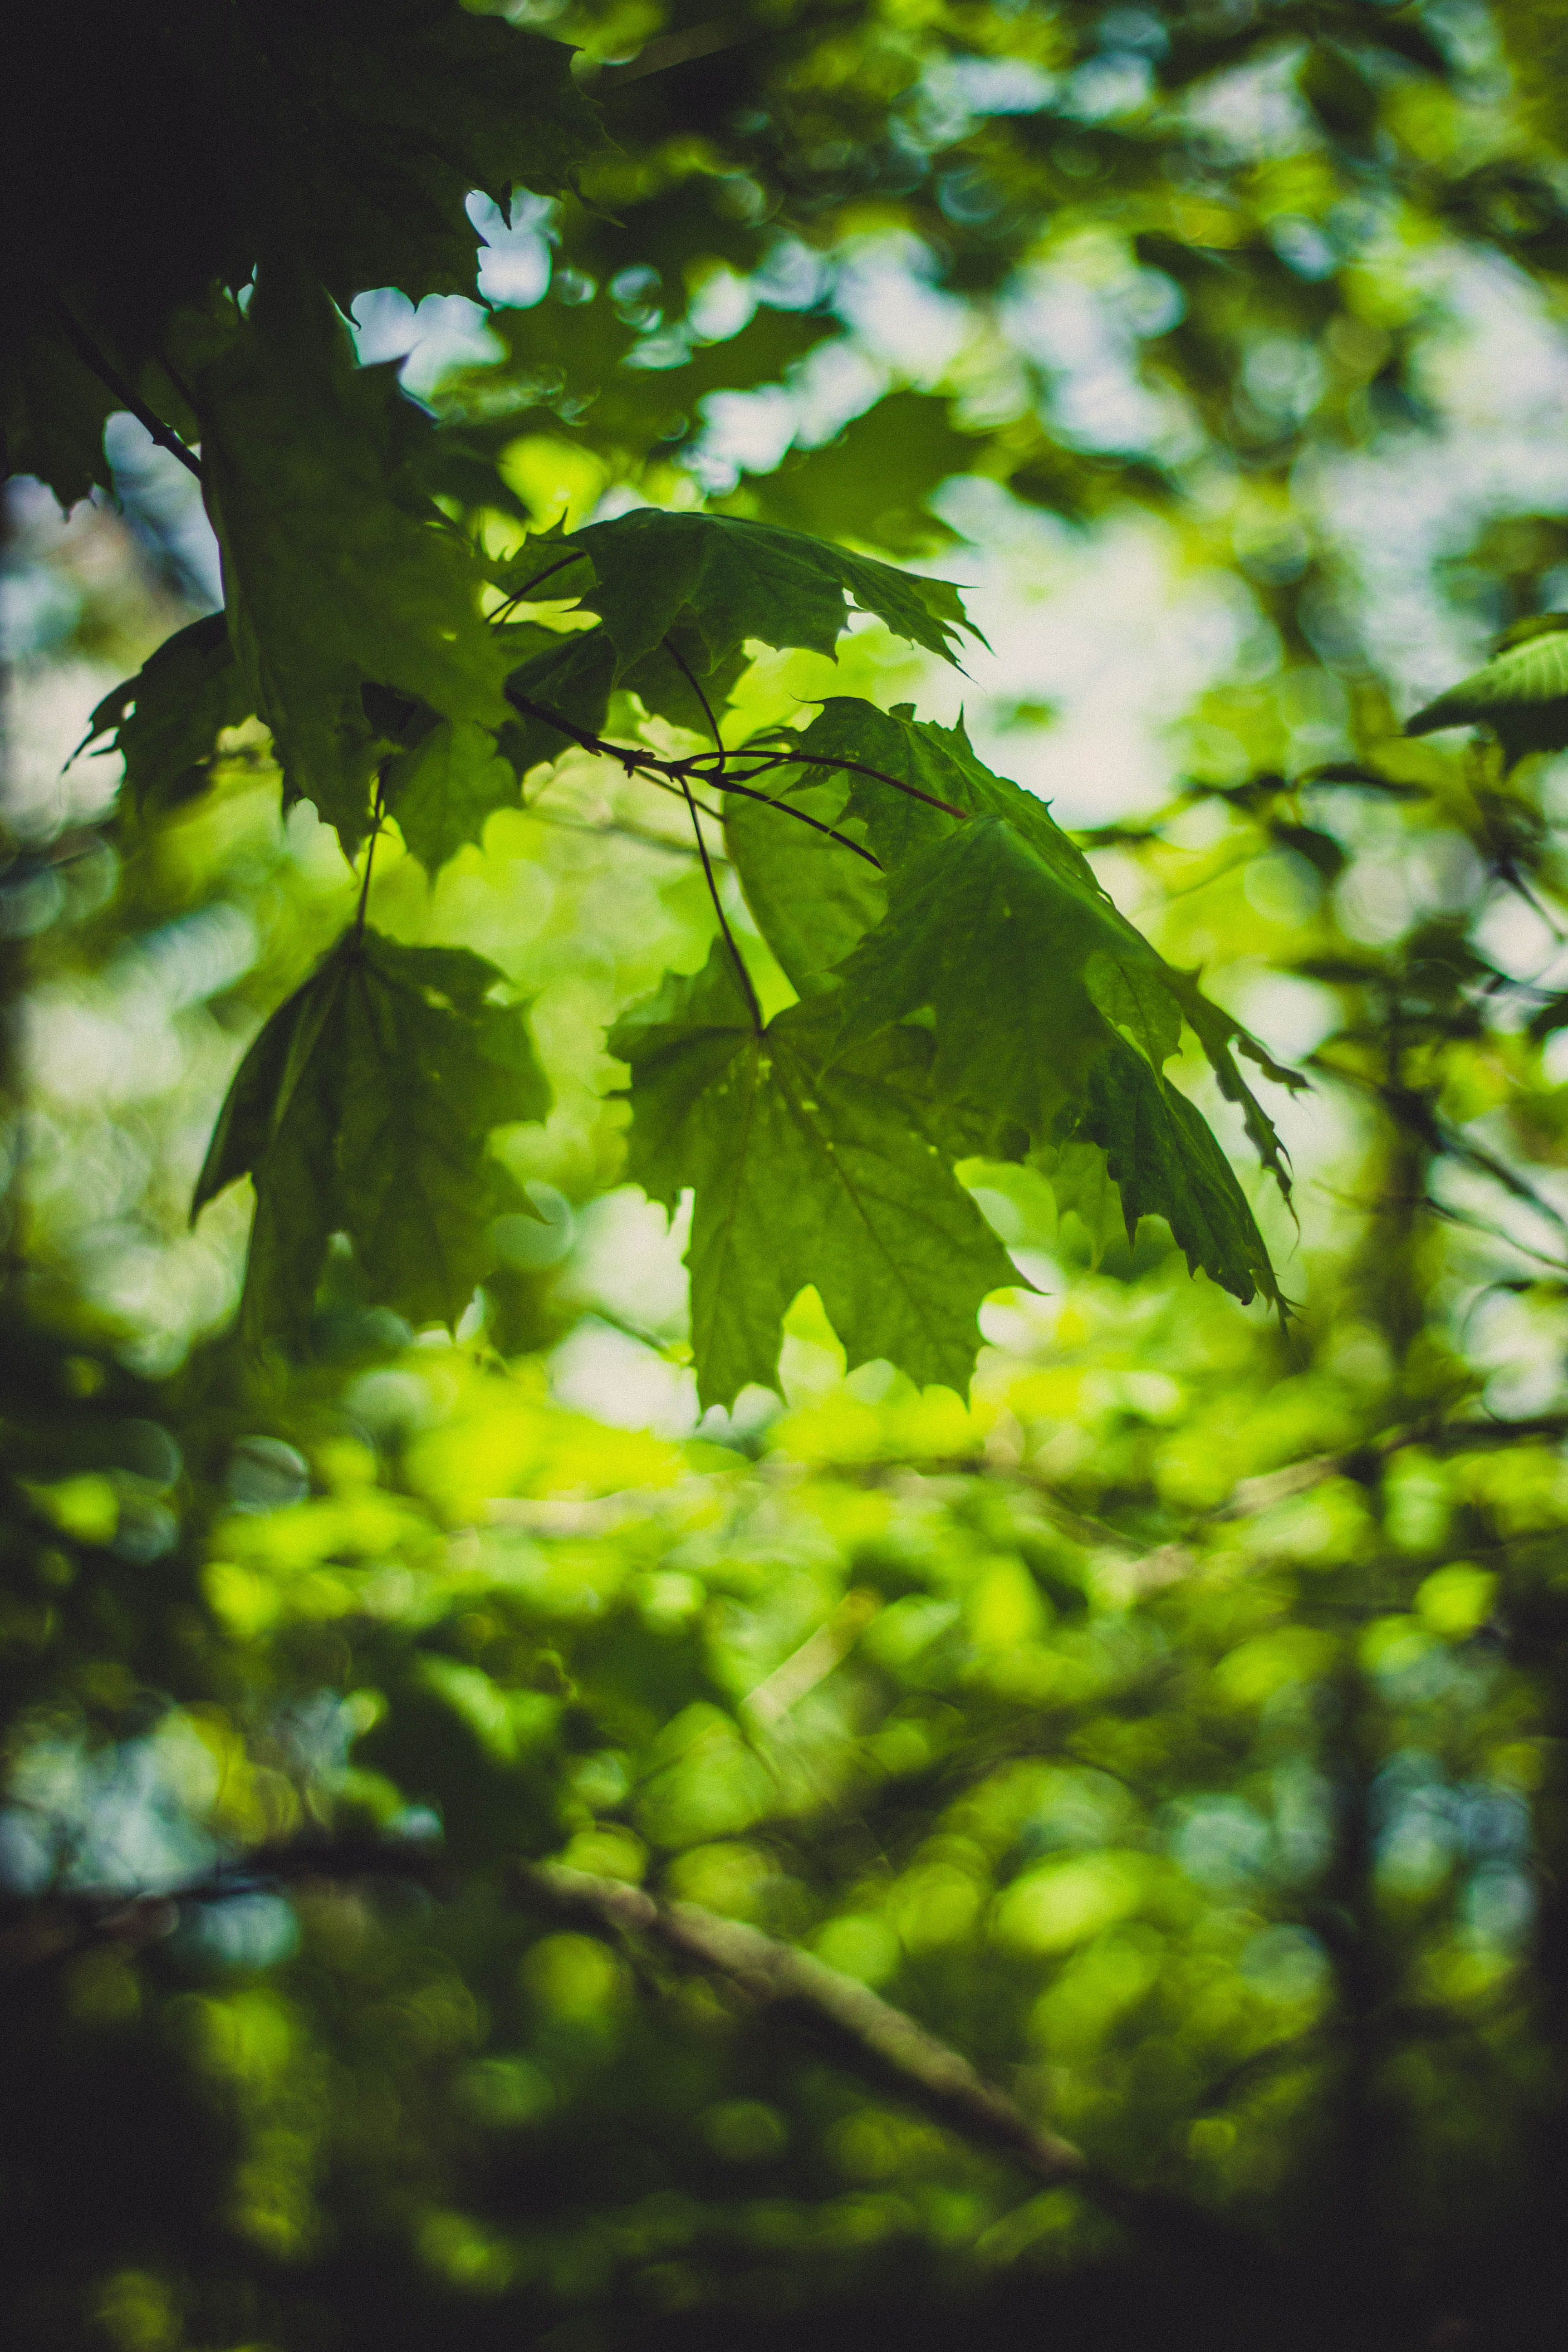 Green lobed leaves on branch photo